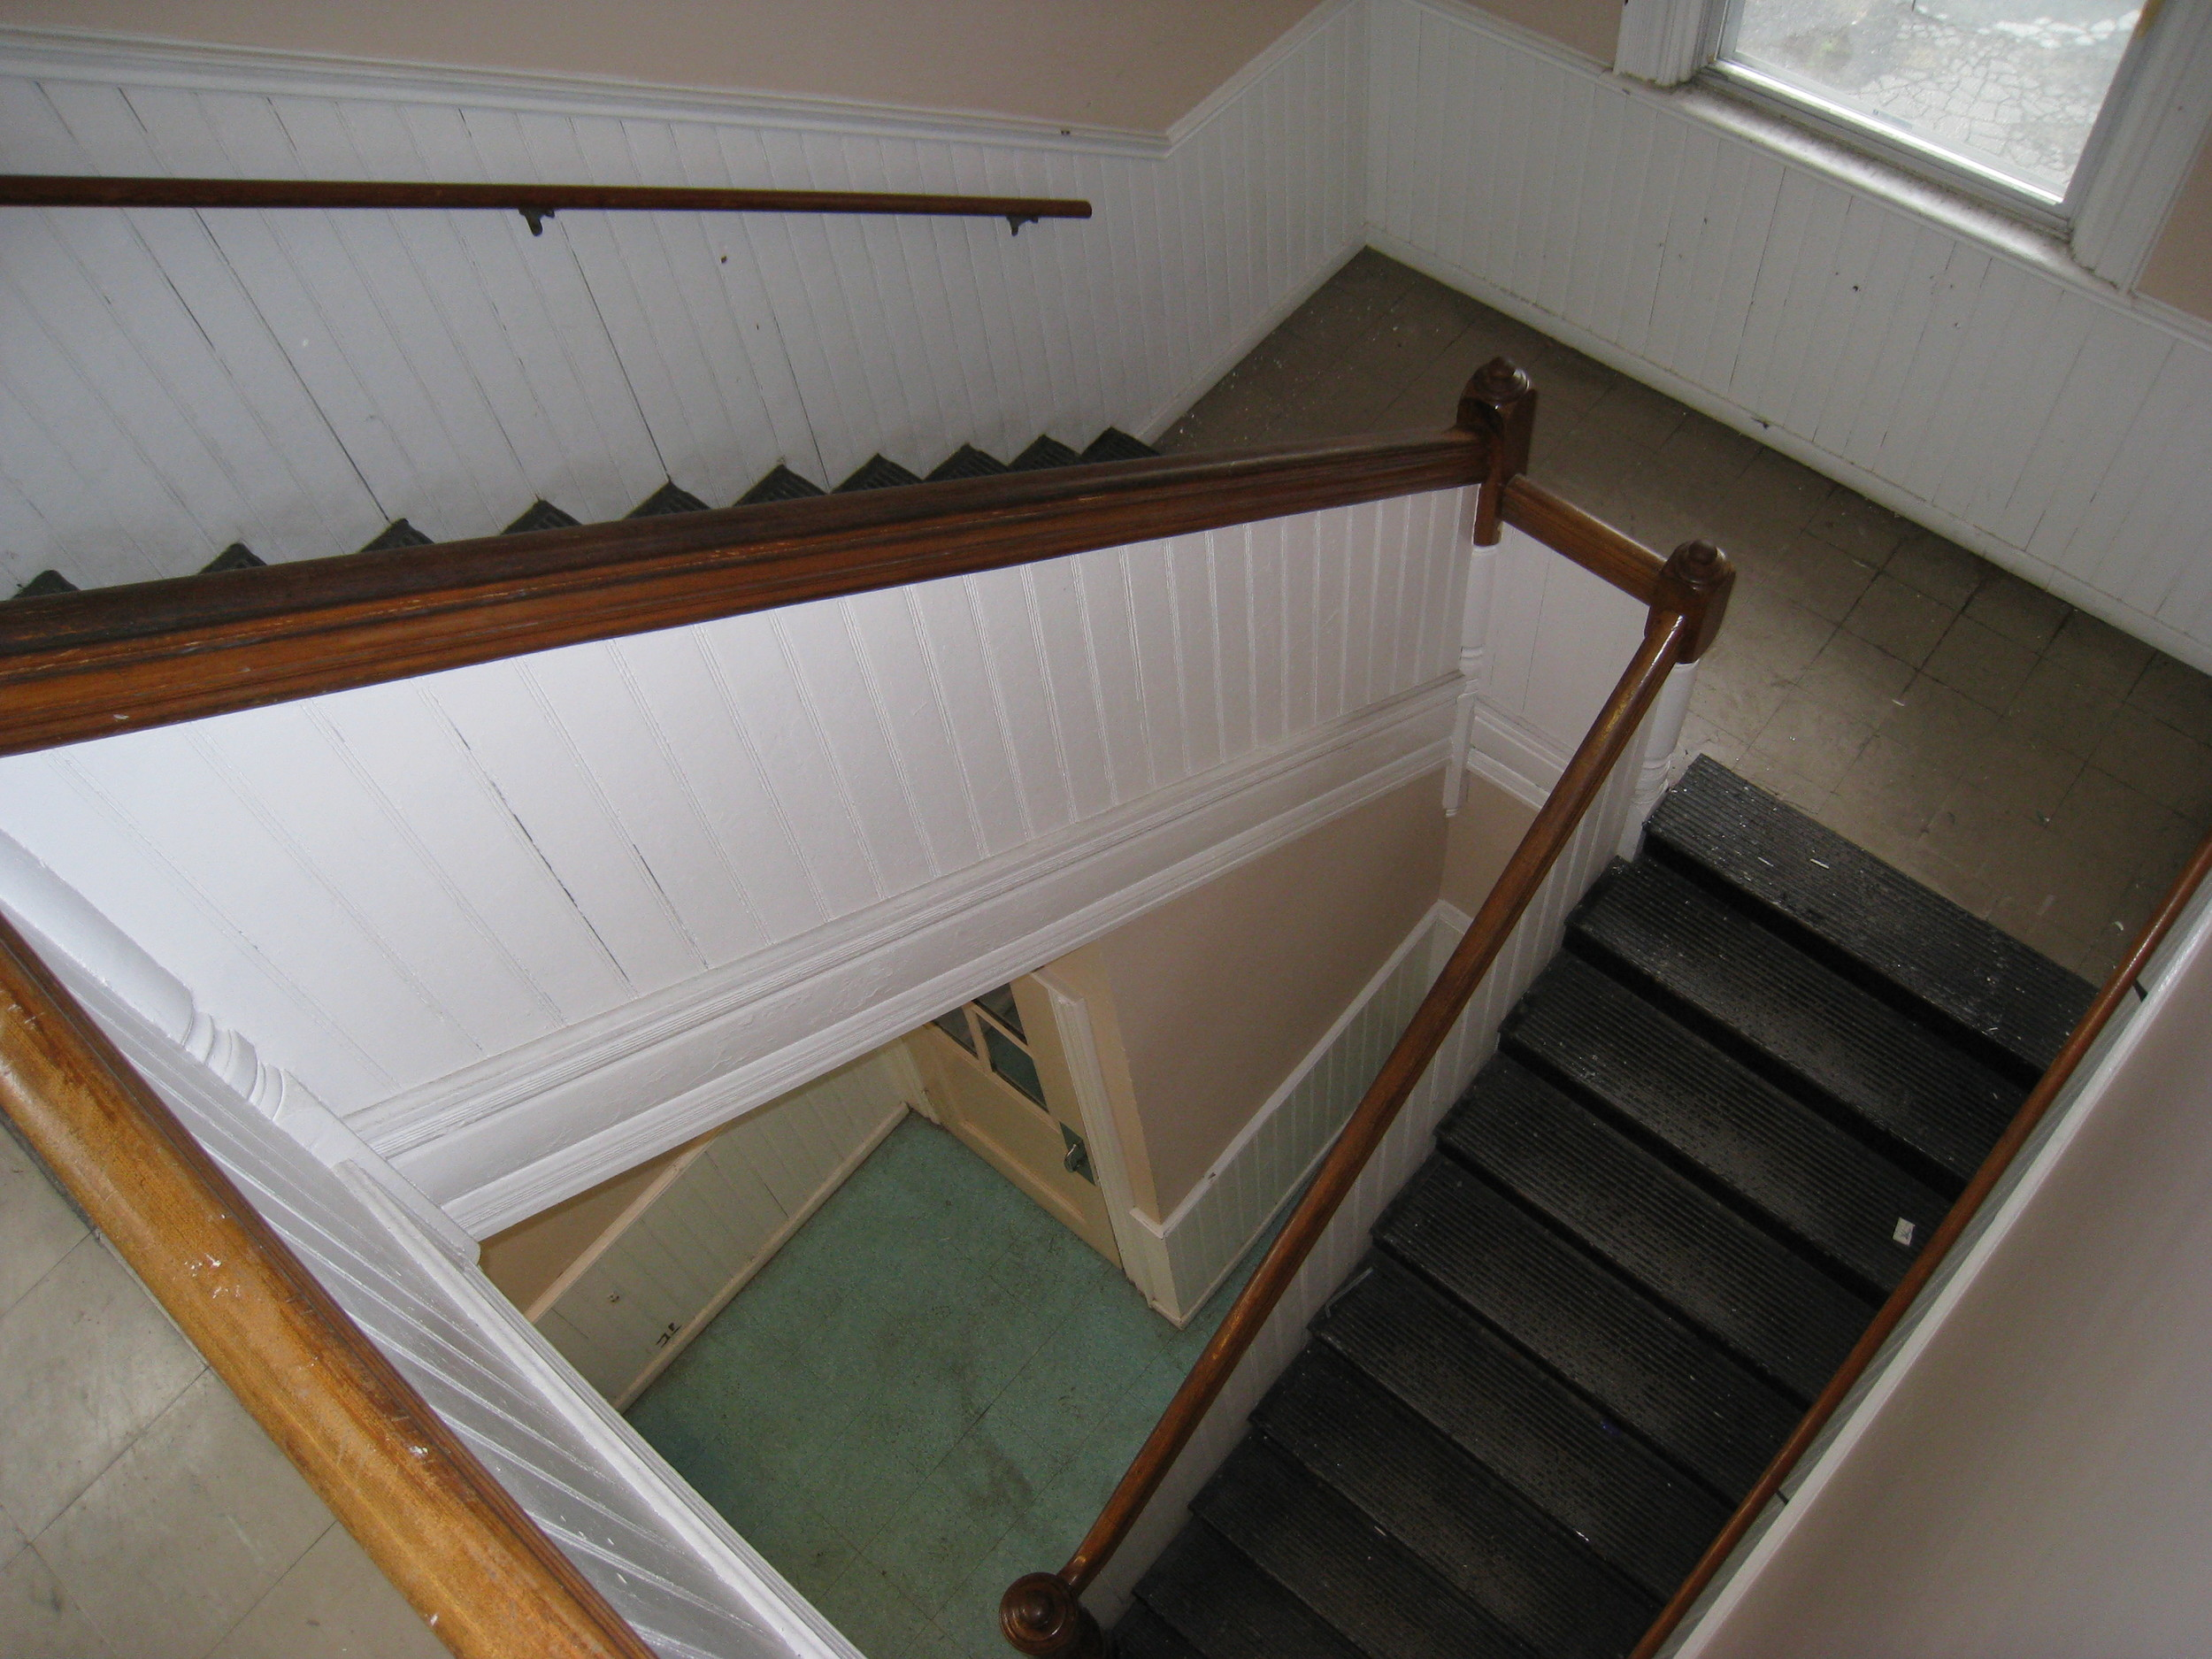 Original staircase and beadboard wainscoting. Photo credit: Providence Revolving Fund